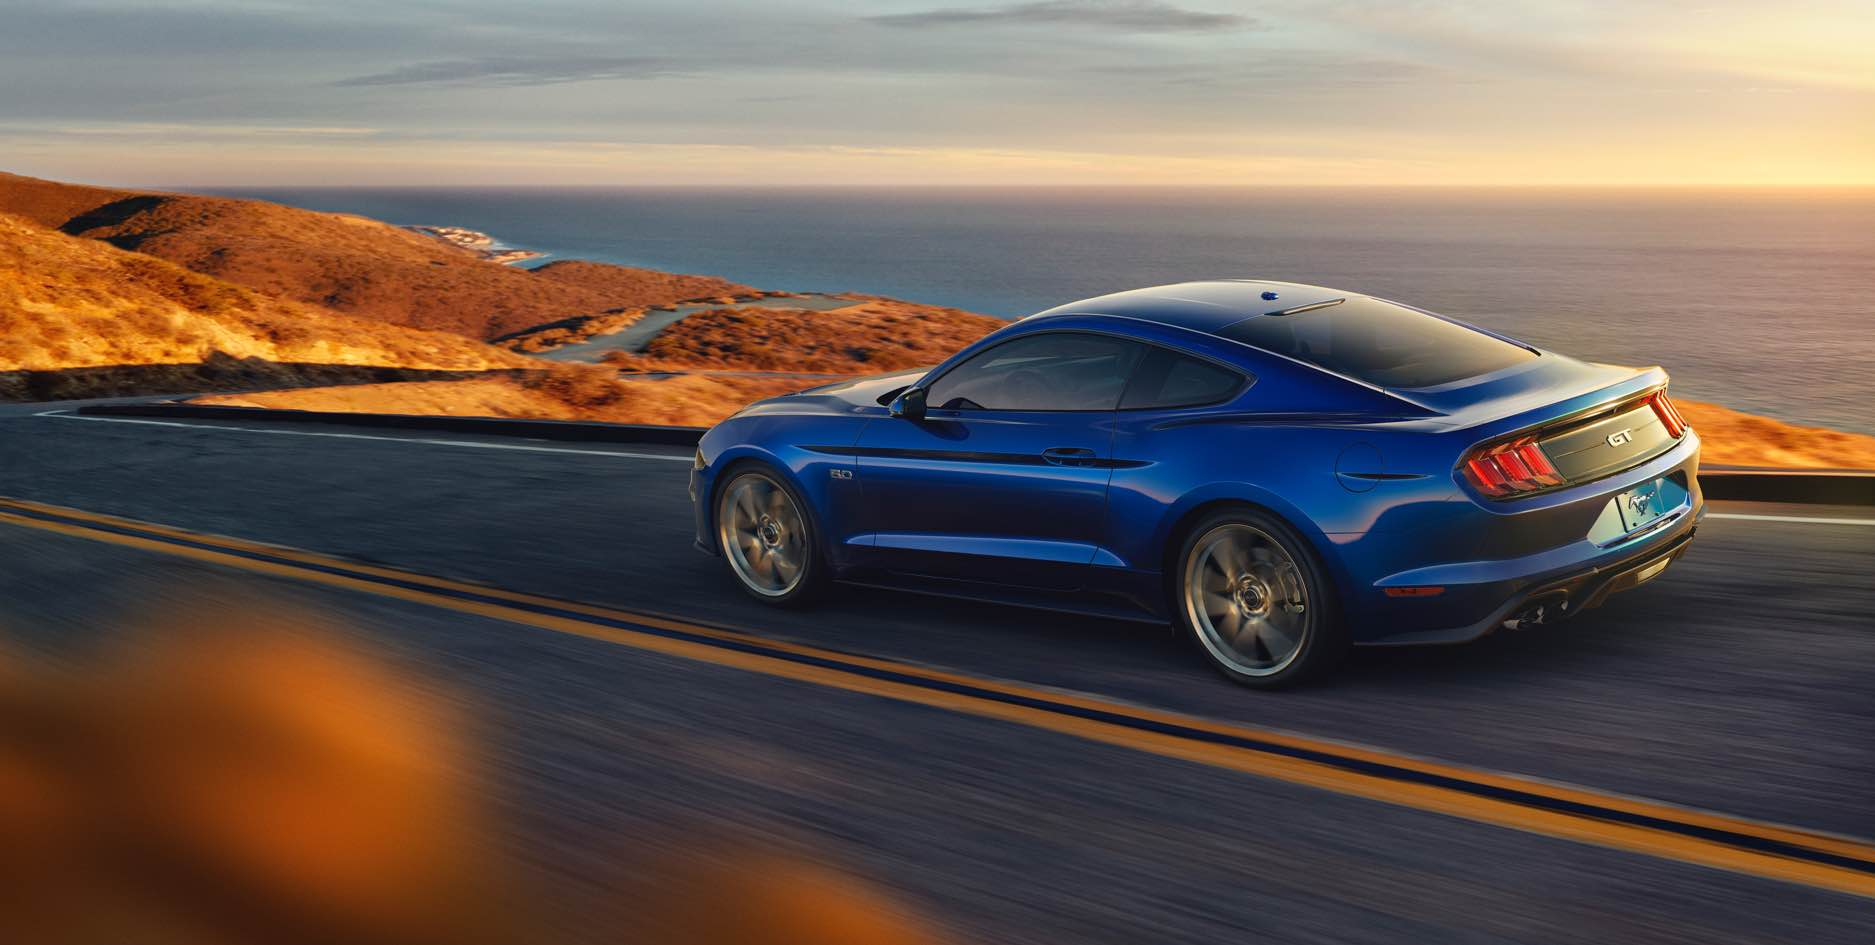 2018 Mustang Gallery 17 Santa Monica Ford Lincoln | New Ford dealership in Santa Monica, CA 90404